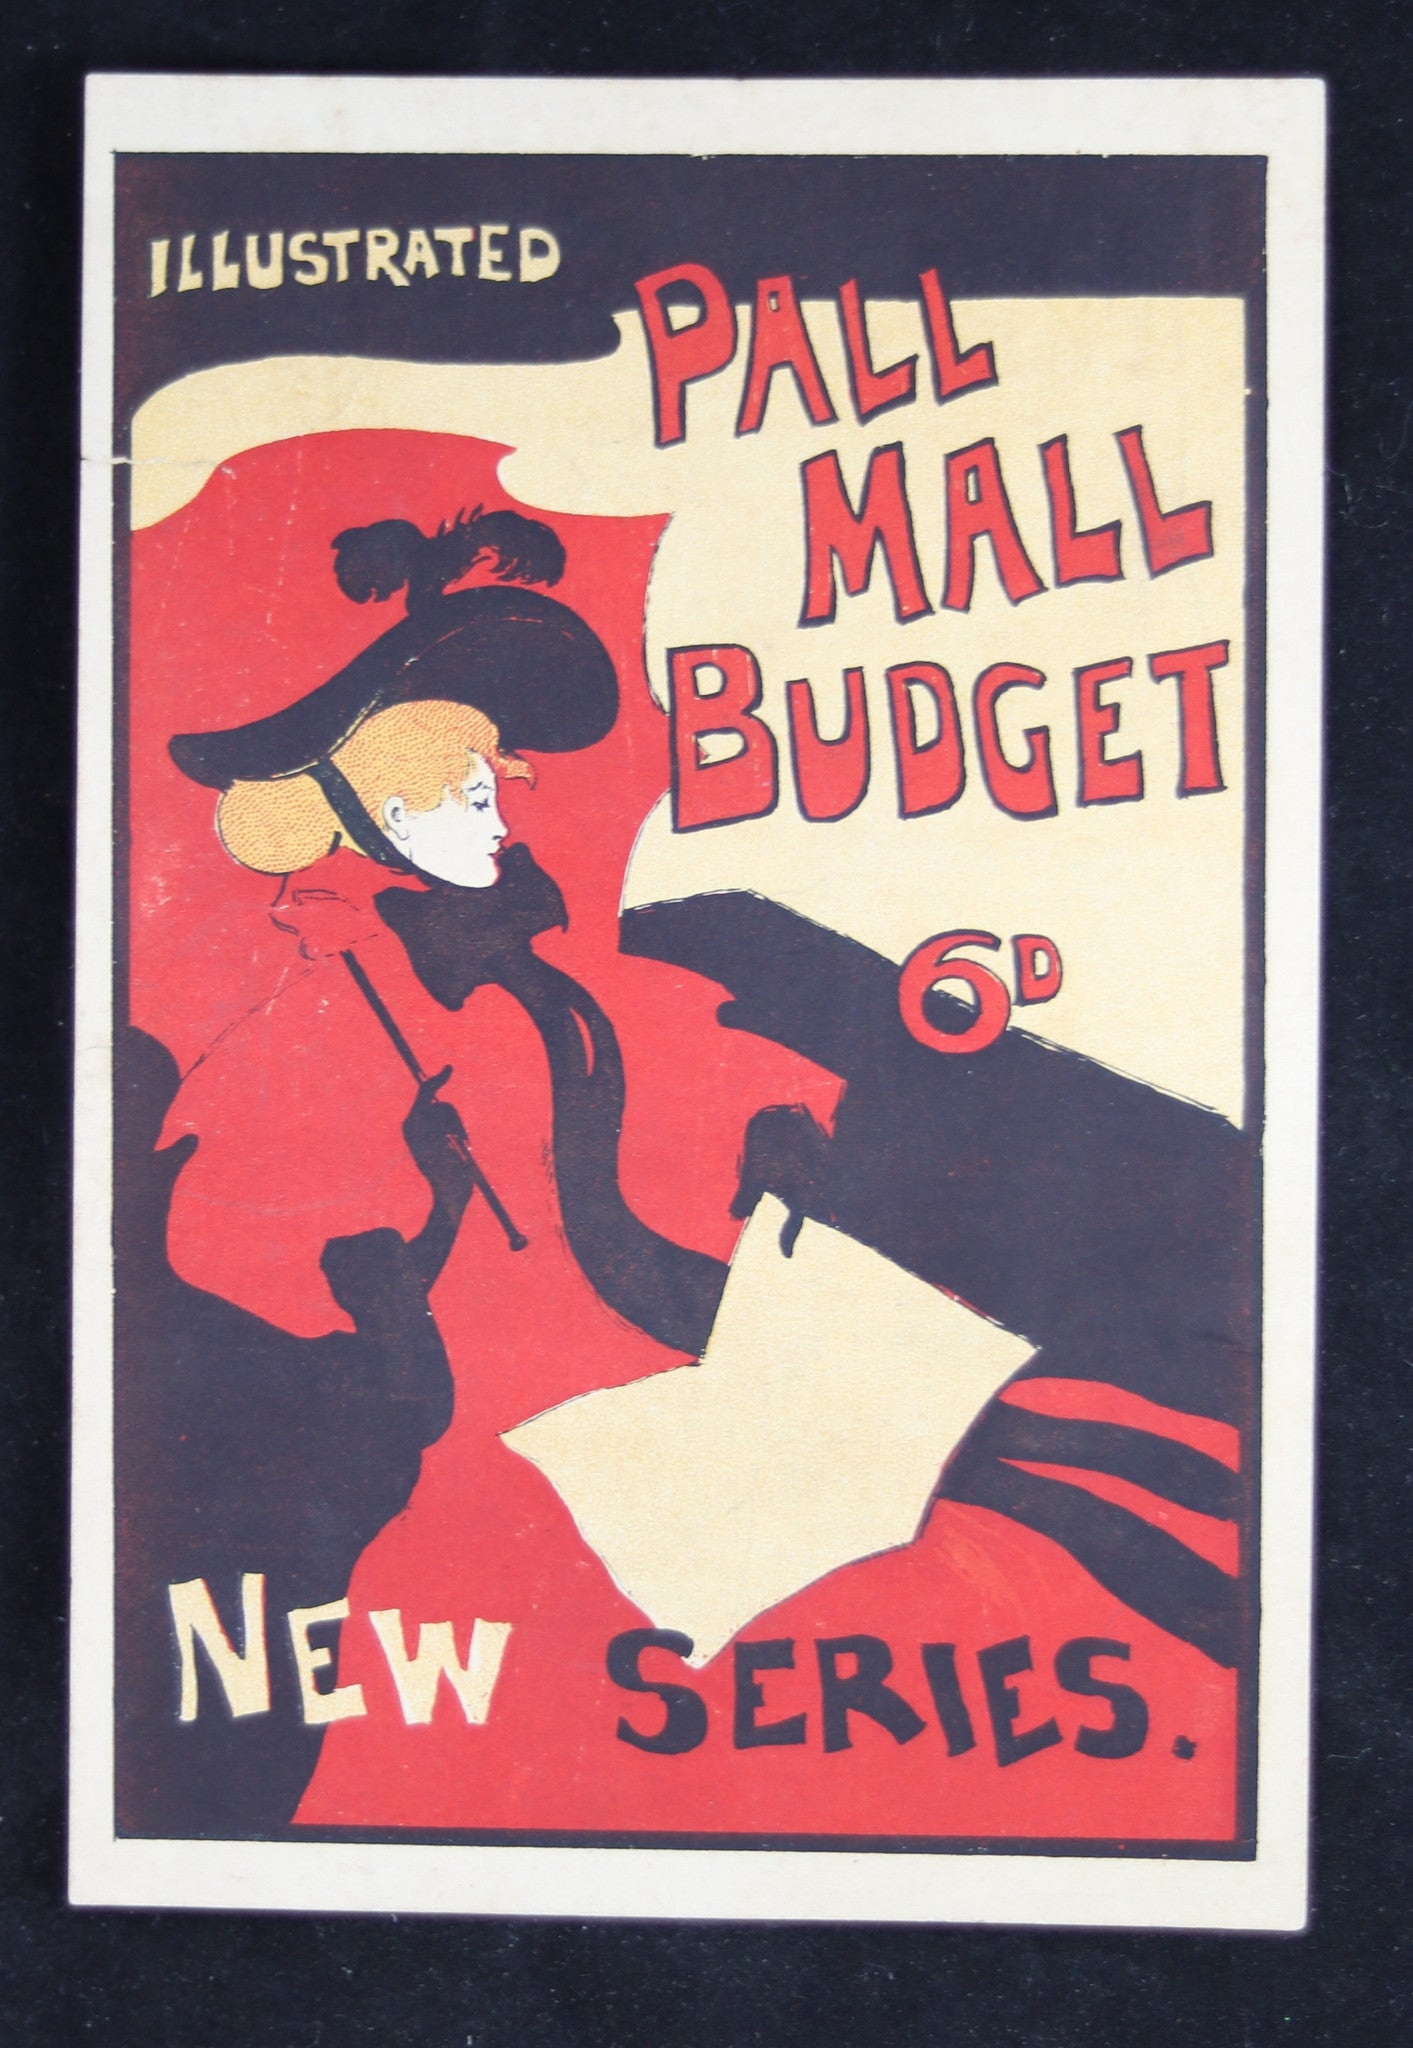 advertising flyer for pall mall budget uk chadbourne ~1894 greiffenhagen flyer for pall mall budget uk